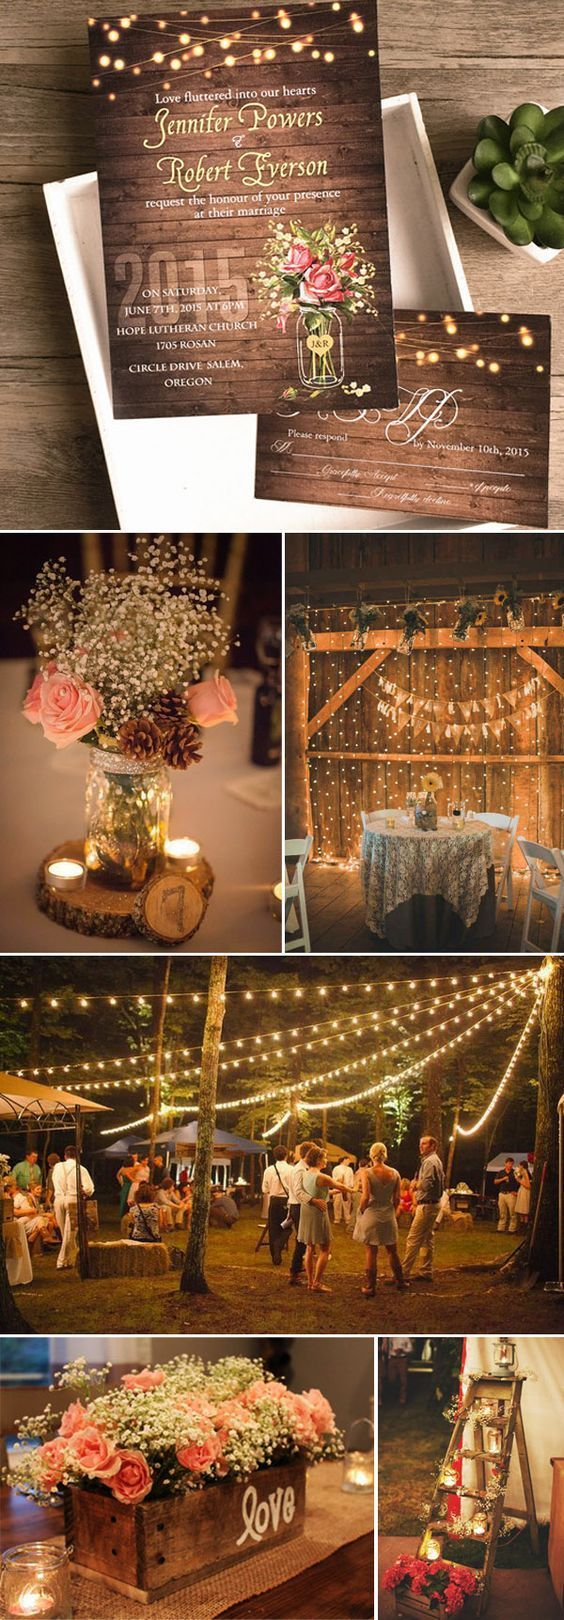 Rustic wedding colors best photos rustic wedding colors weddings rustic wedding colors best photos cute wedding ideas junglespirit Image collections